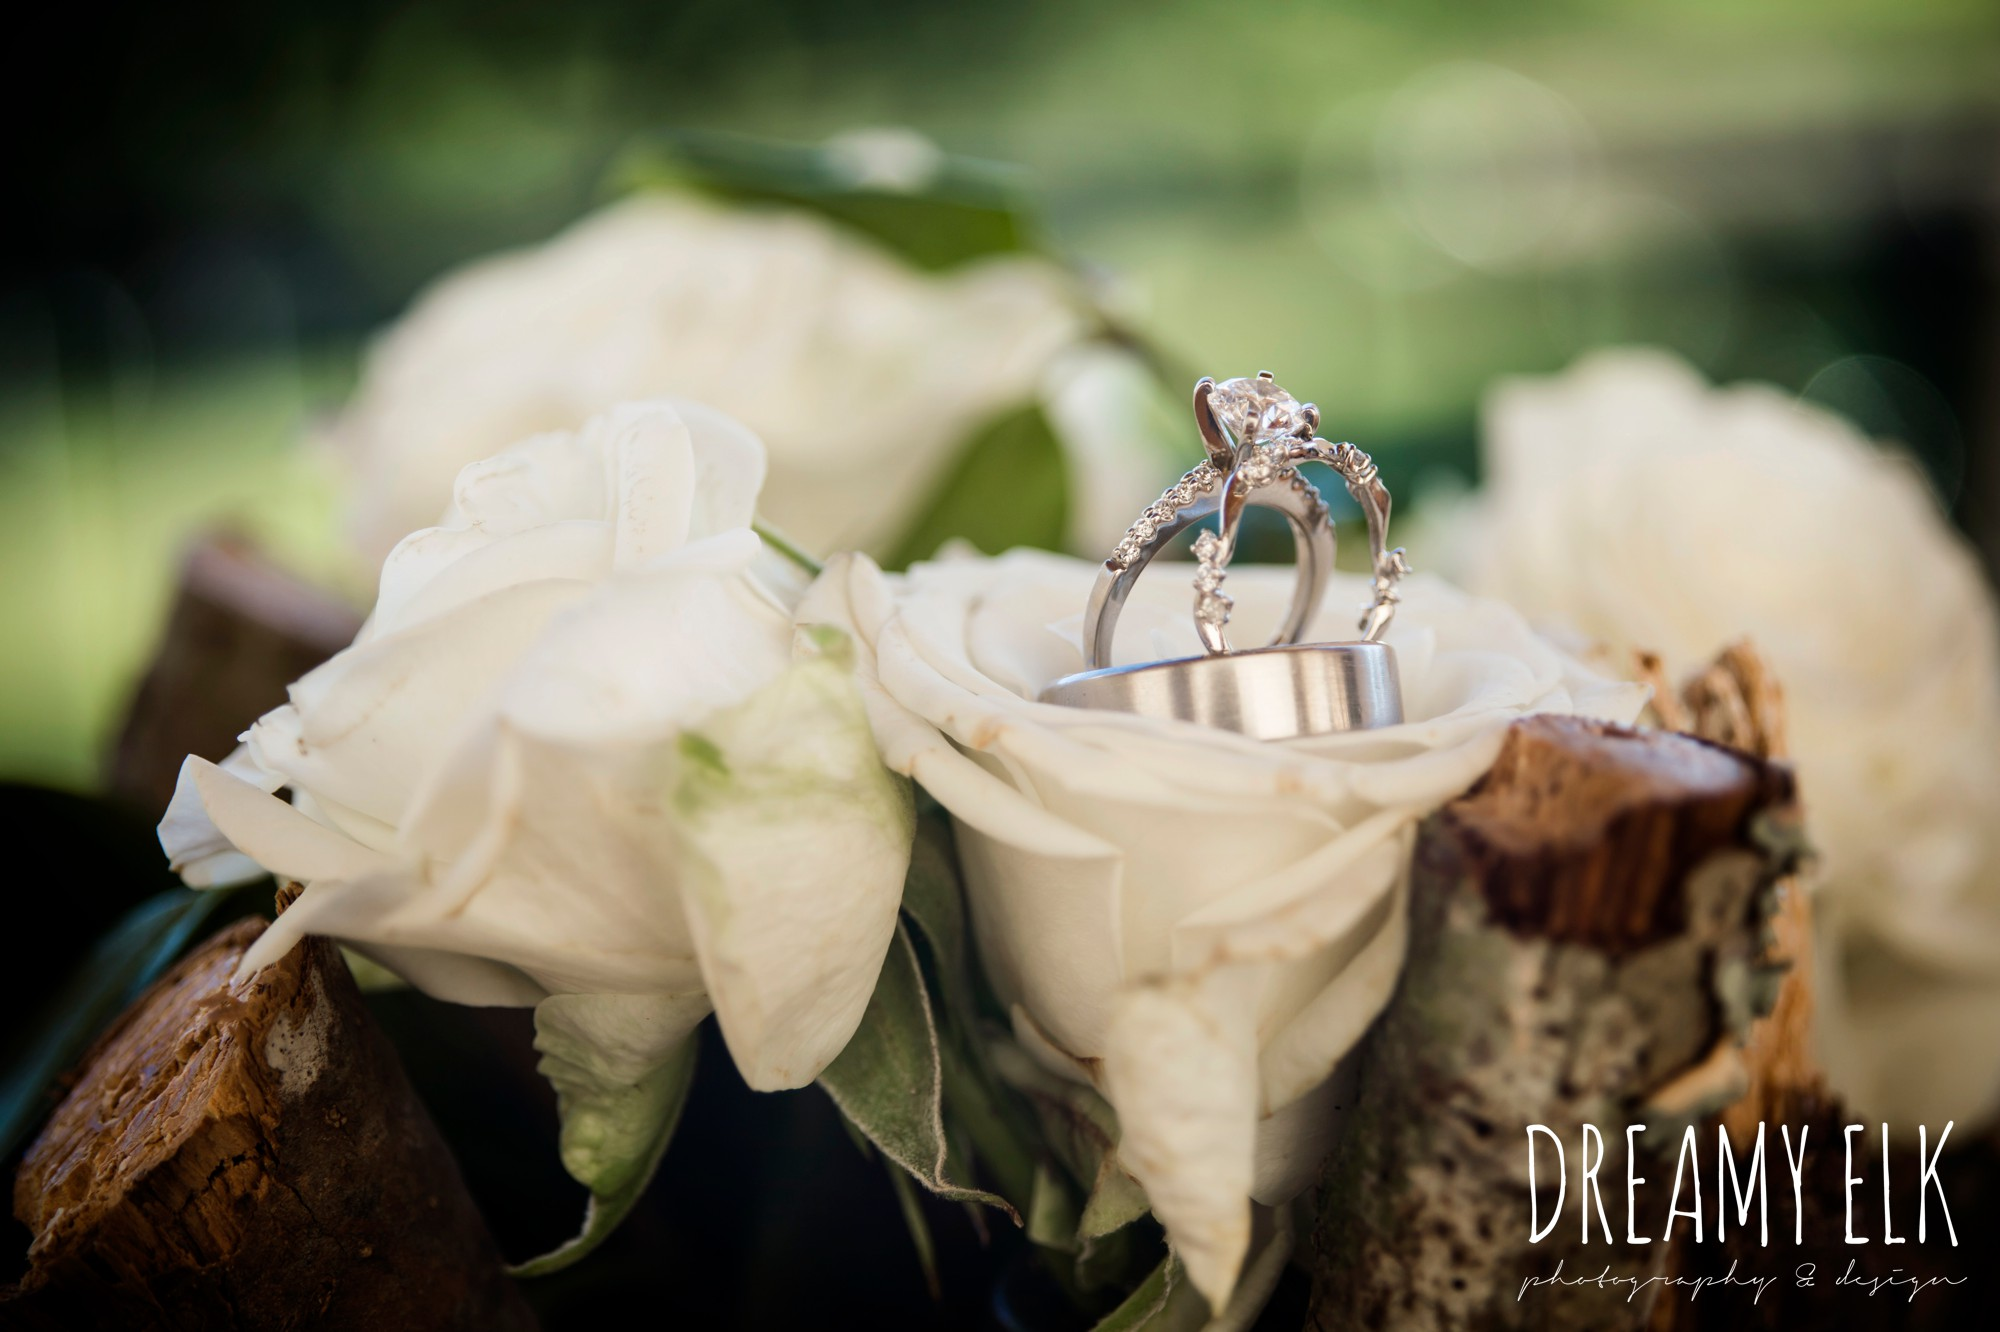 diamond engagement ring, wedding jewelry, outdoor spring april wedding photo, chapel dulcinea ceremony, dripping springs, texas {dreamy elk photography and design}